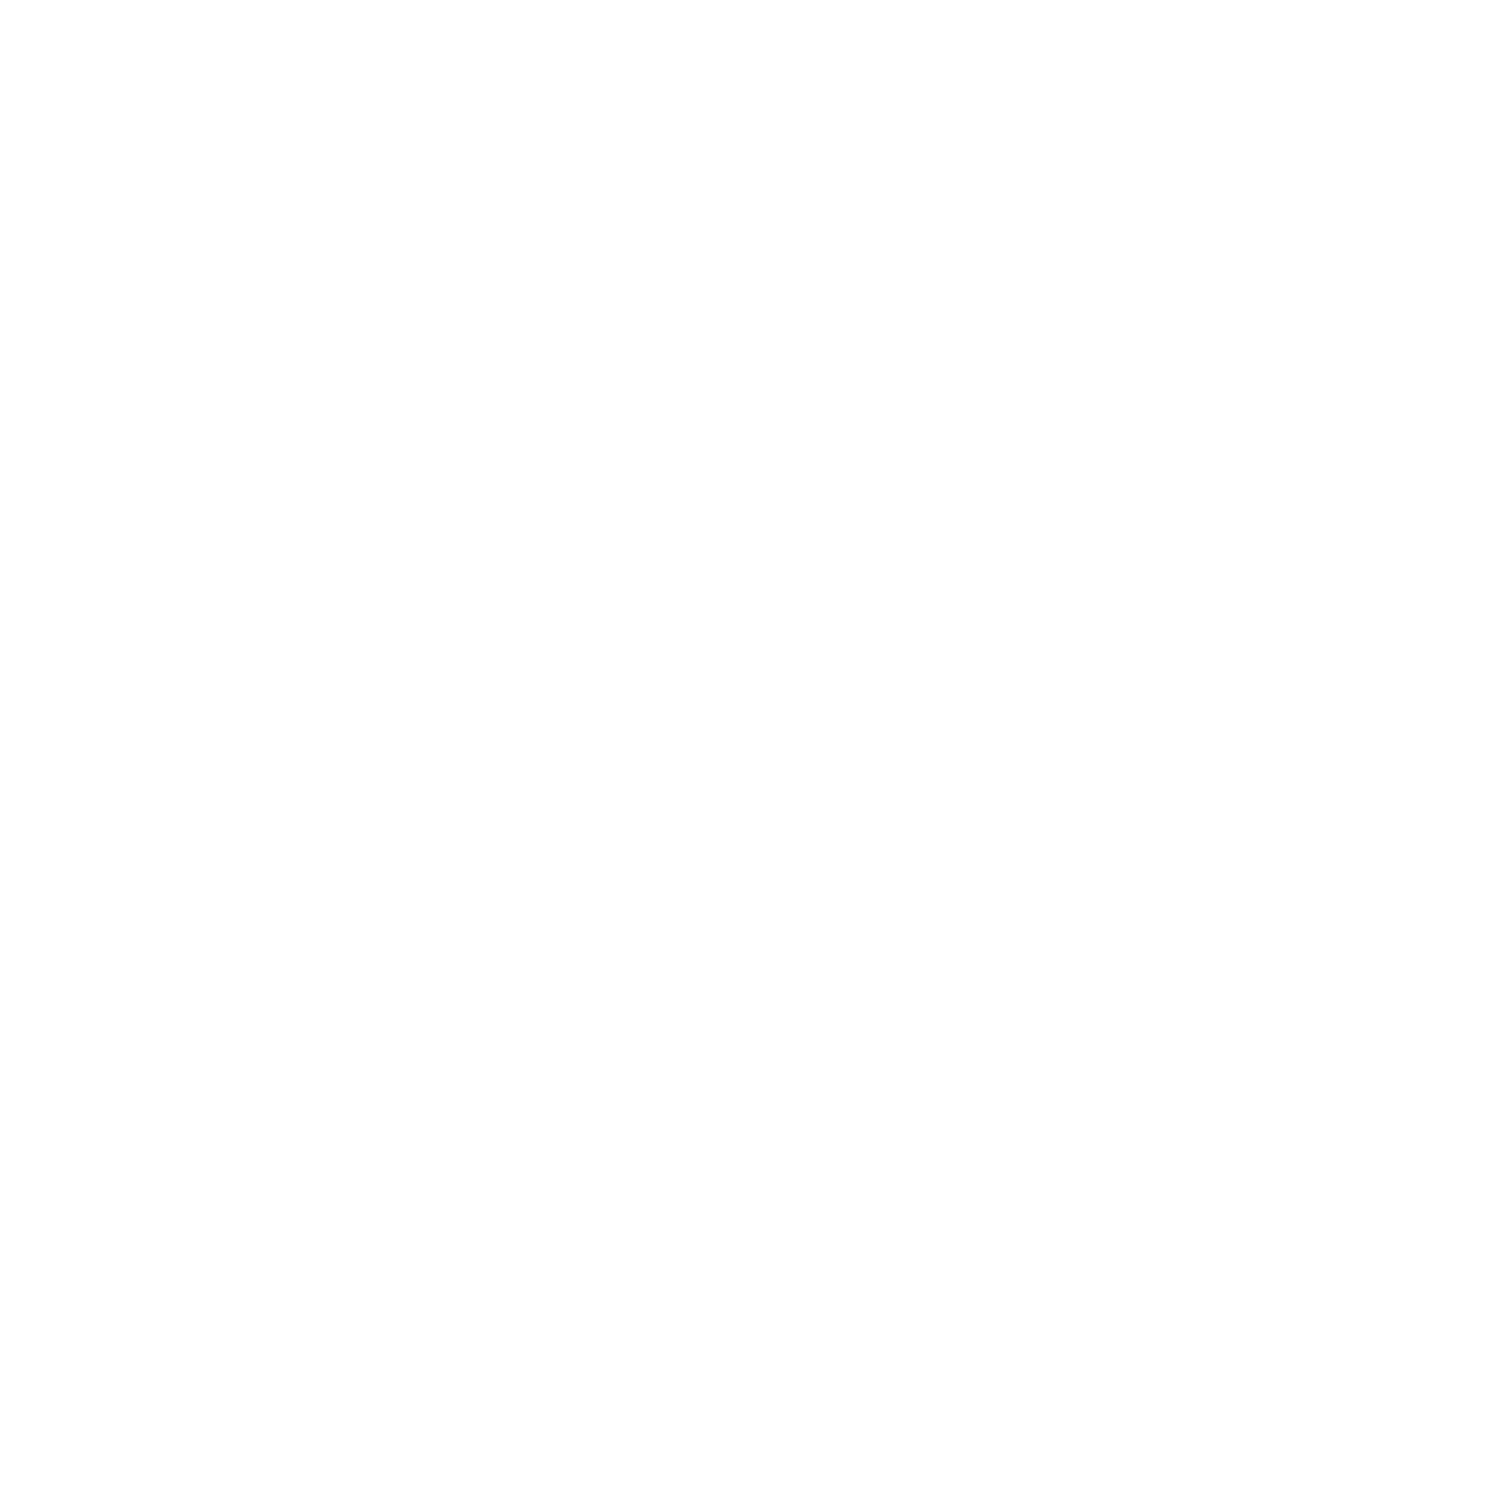 Farmers & Crafters